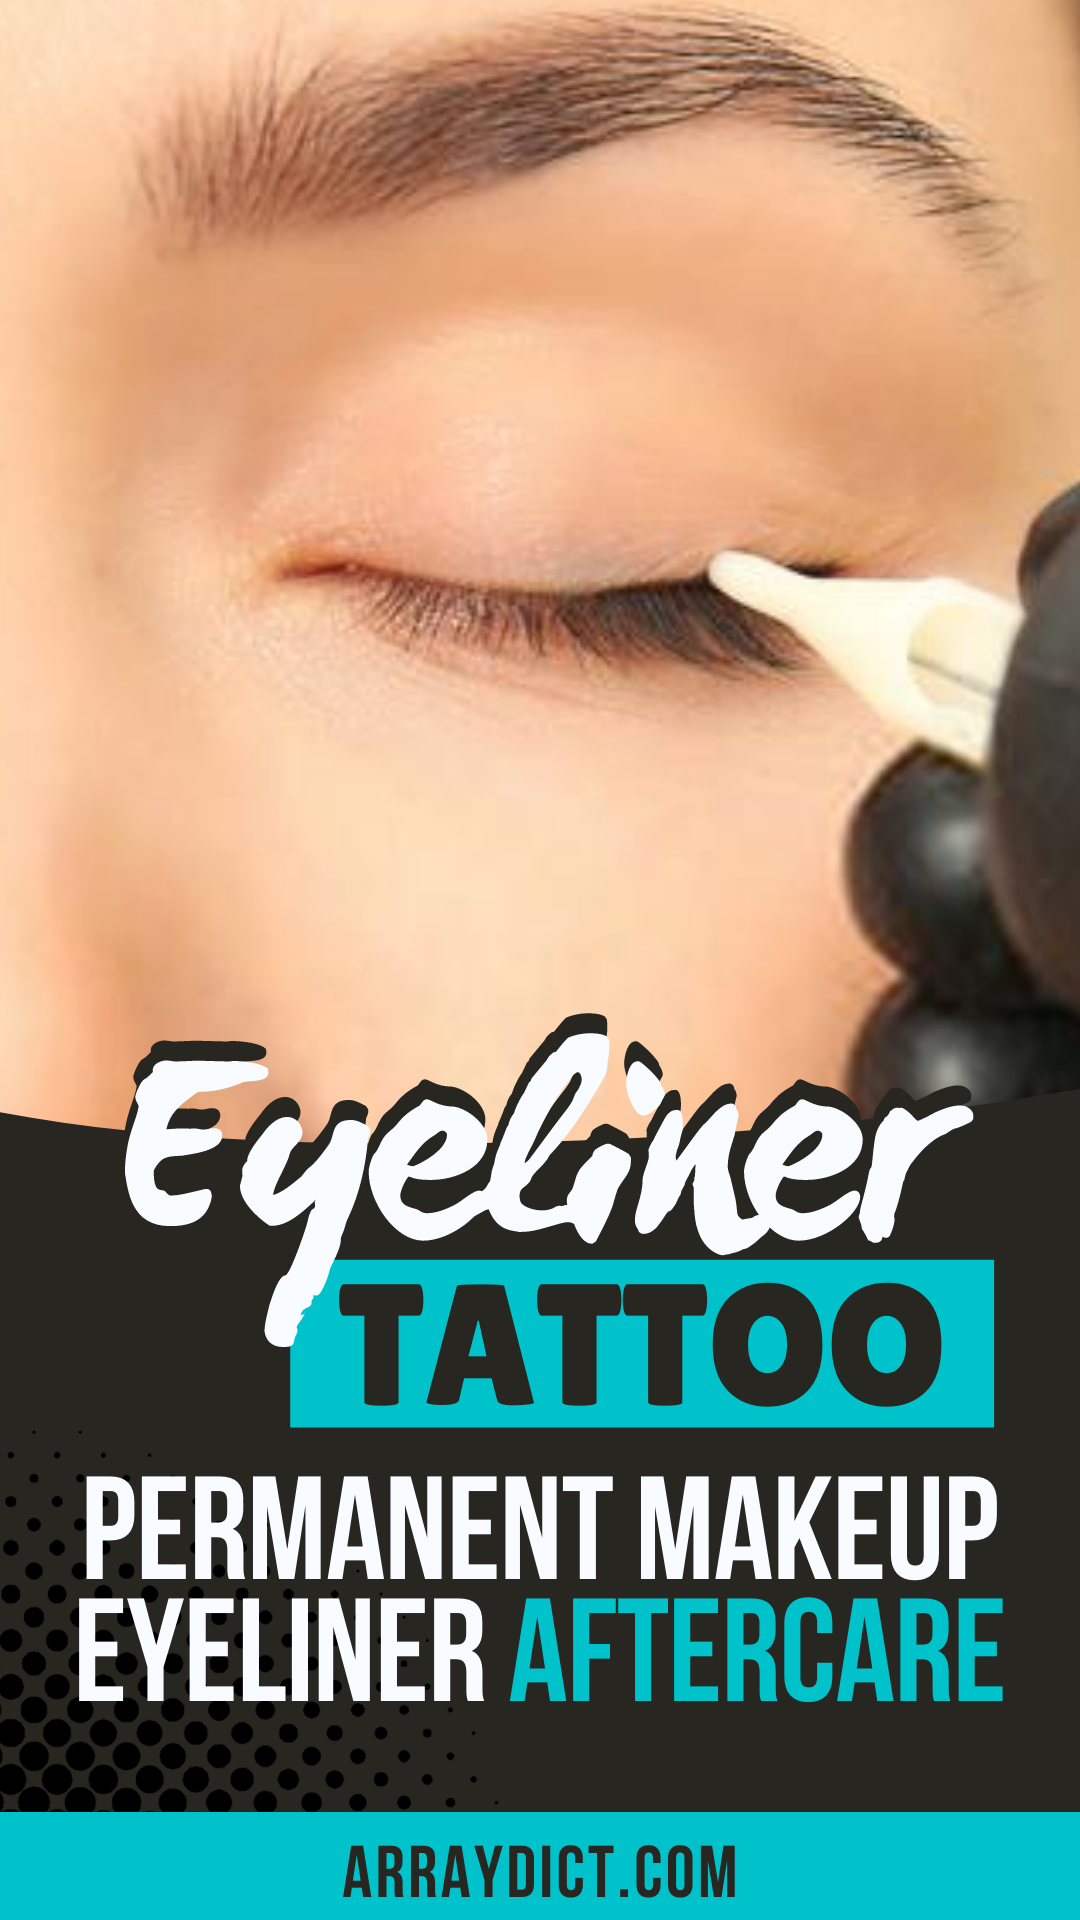 Eyeliner Tattoo (Aftercare Instructions) What You Need to